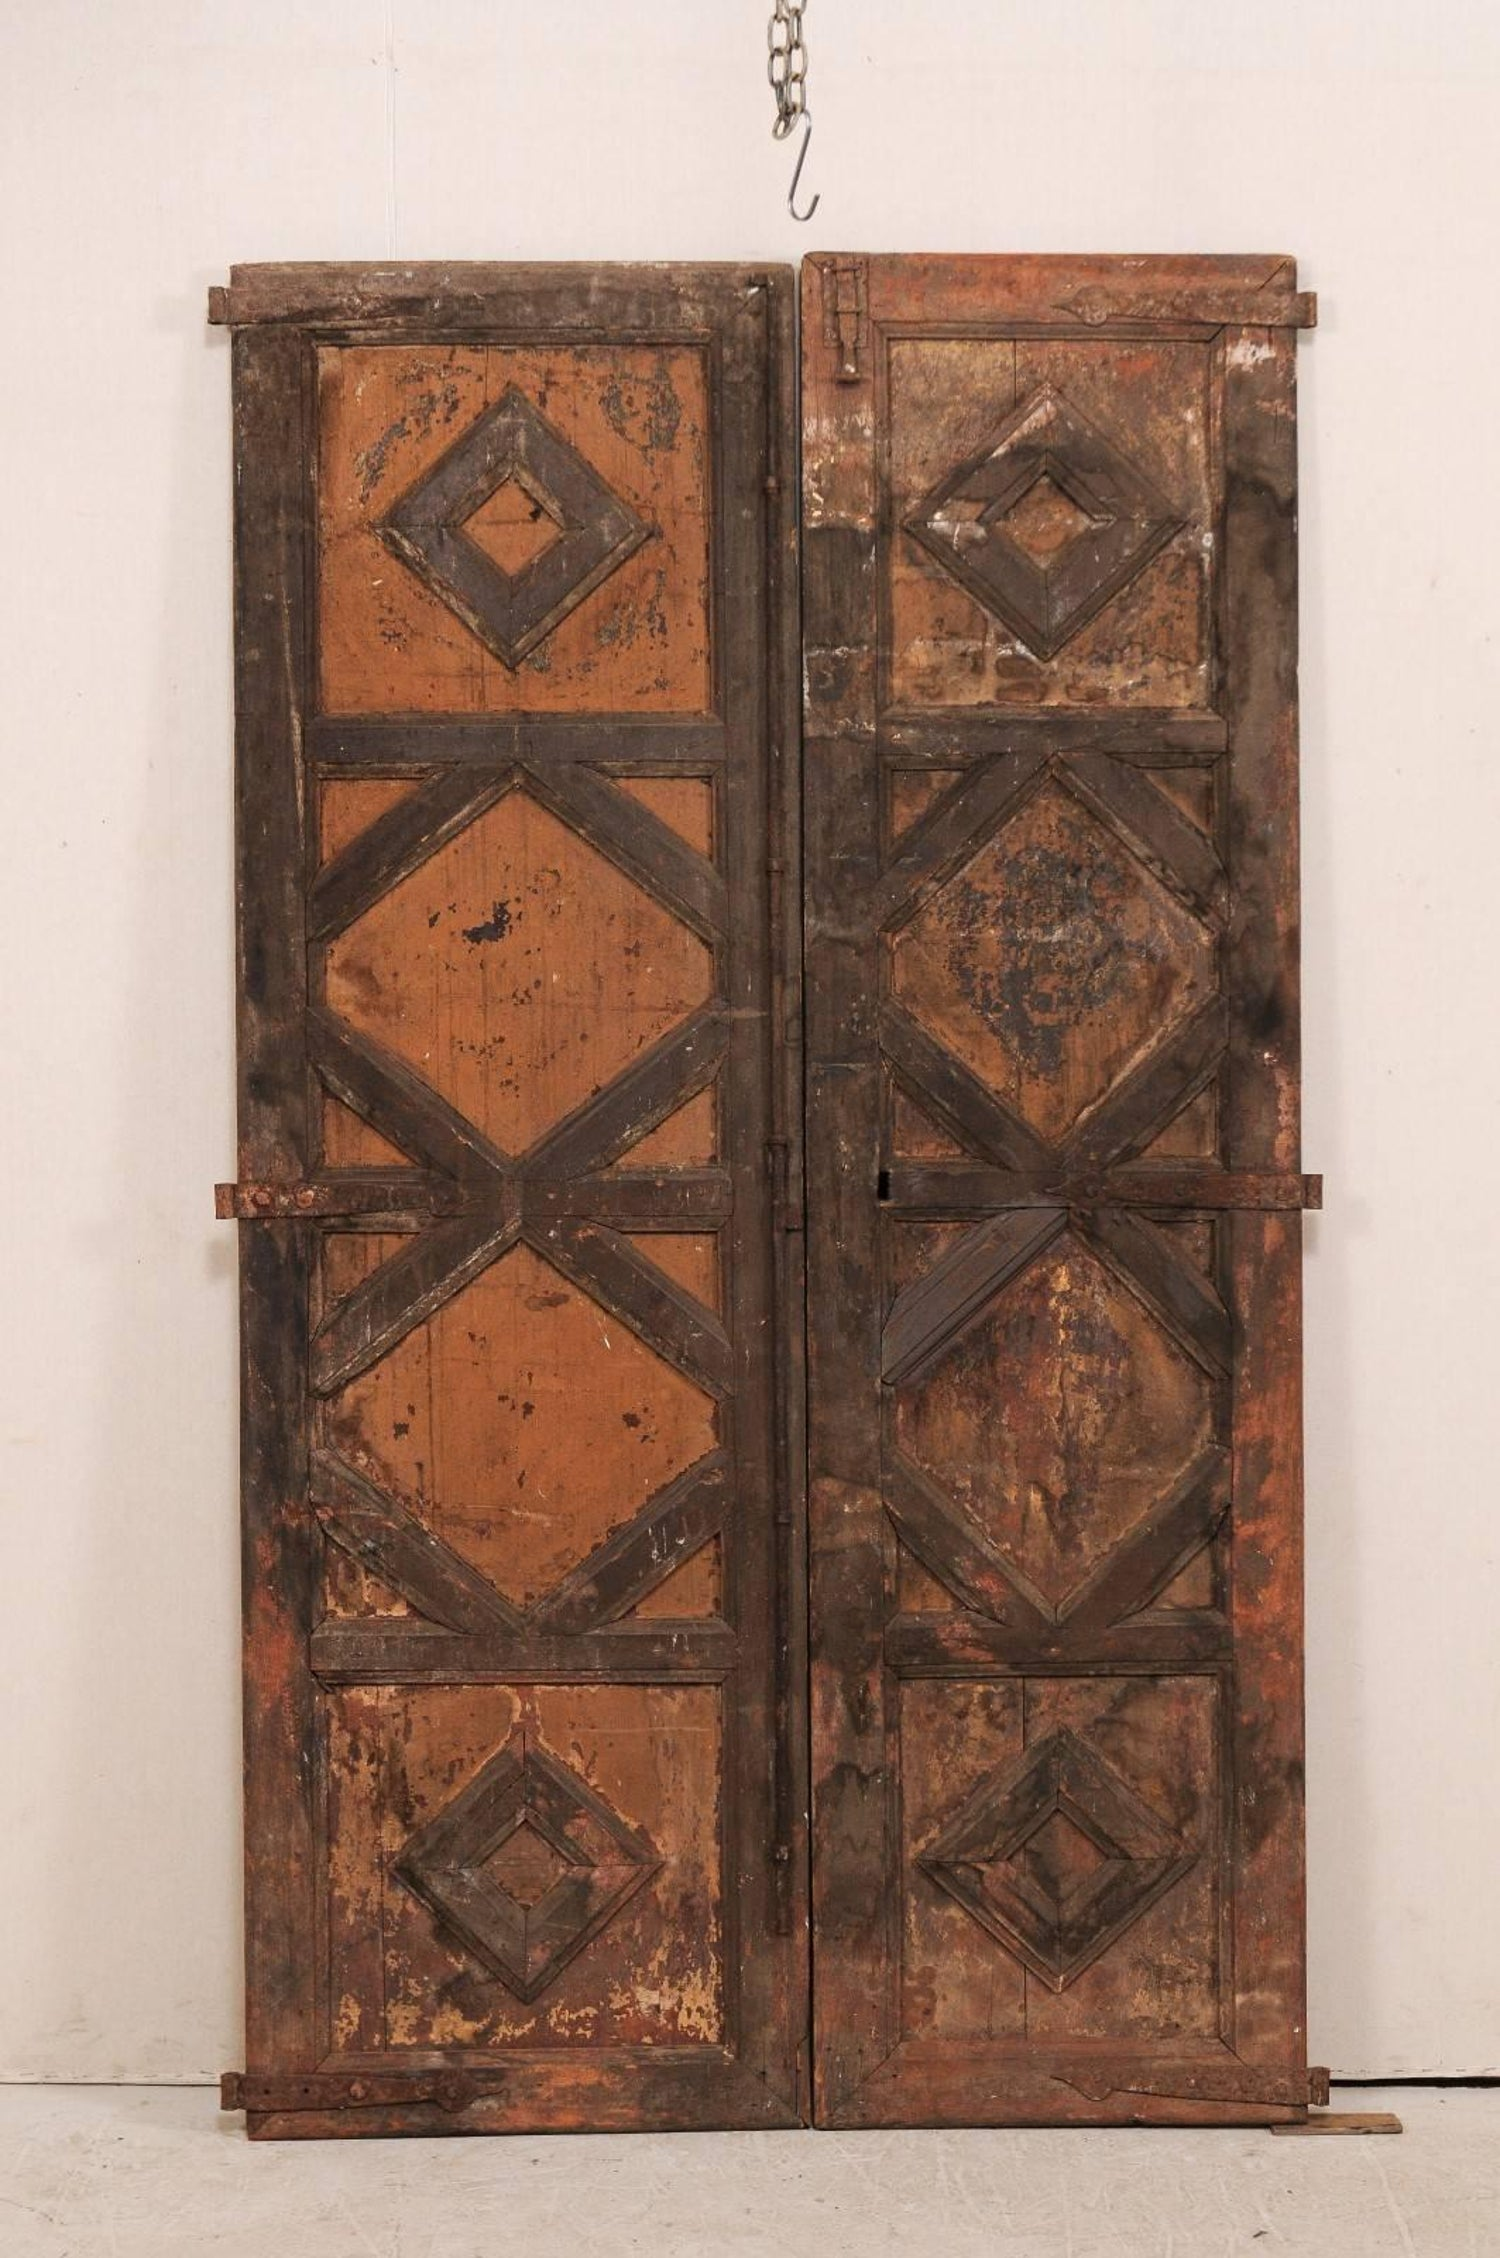 Pair of 18th Century Spanish Carved Wood Doors with Nice Molded Diamond  Pattern For Sale at 1stdibs - Pair Of 18th Century Spanish Carved Wood Doors With Nice Molded